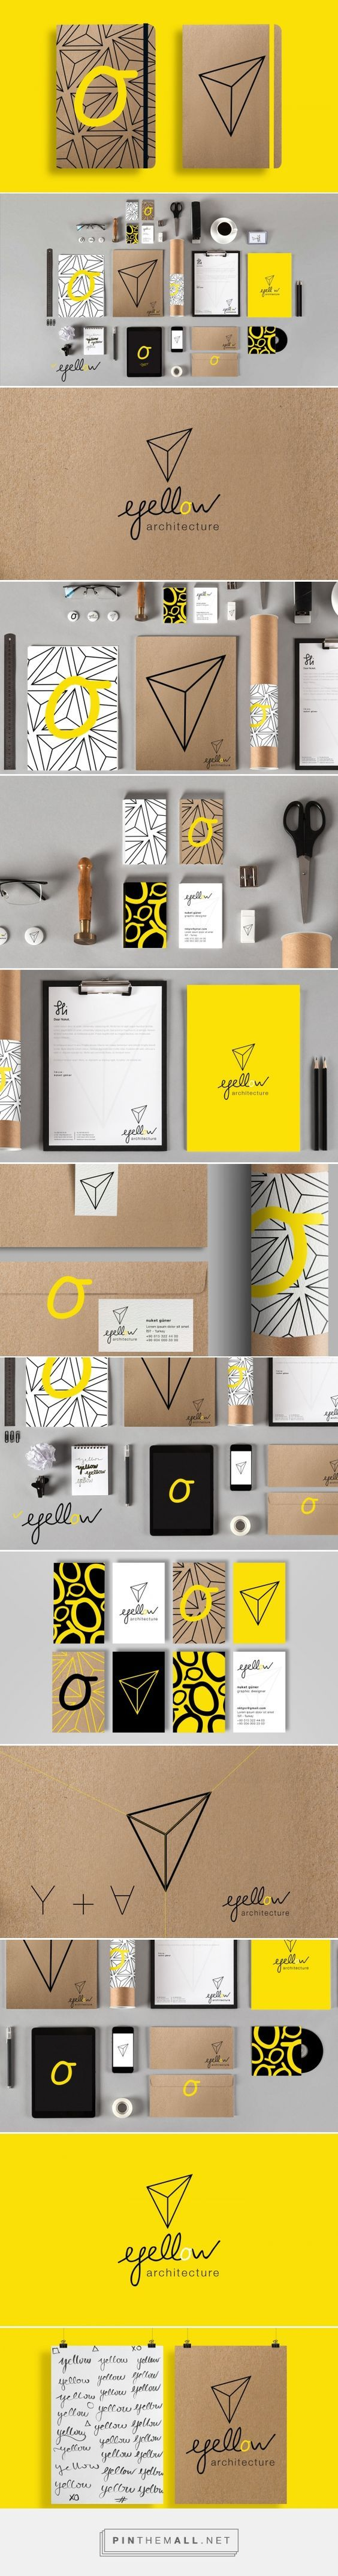 Yellow Architecture Branding by Nuket Guner Corlan | Fivestar Branding – Design and Branding Agency & Inspiration Gallery: